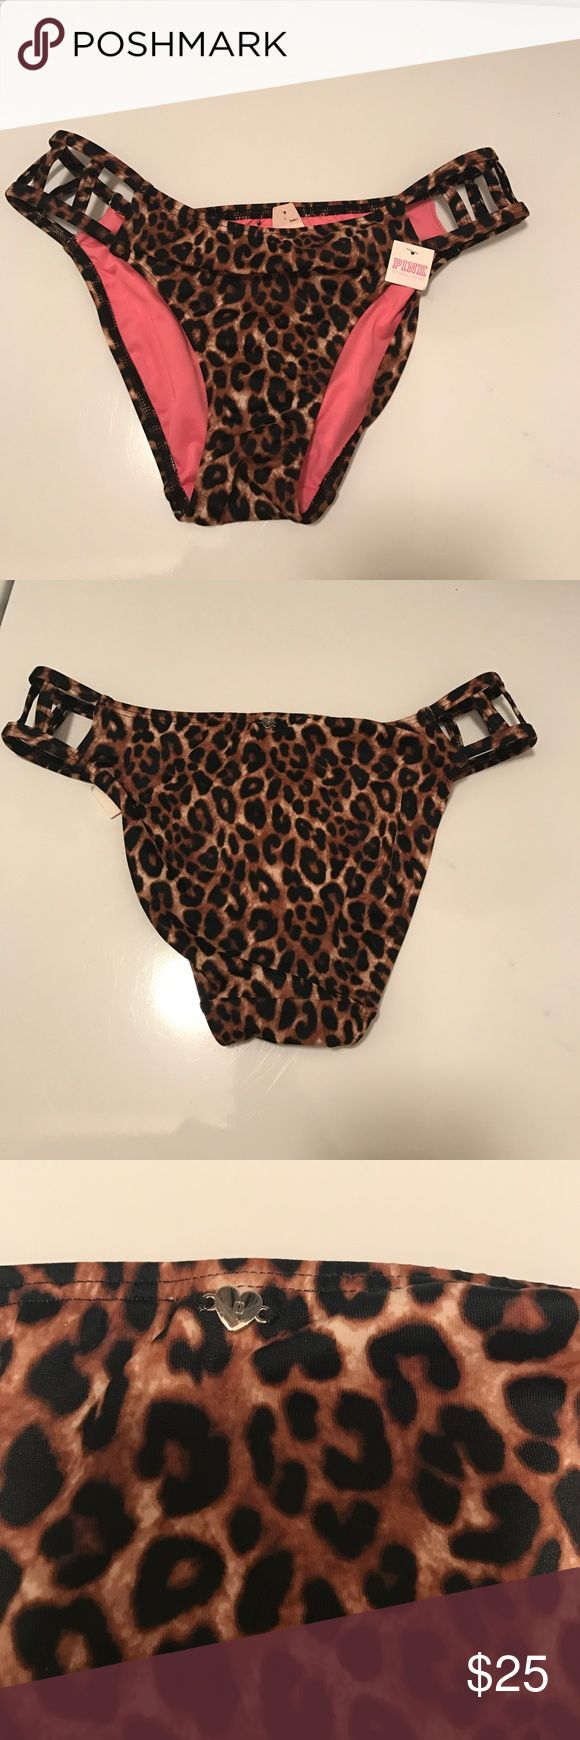 🐆Victoria's Secret PINK animal print bikini🐆 Victoria's Secret leopard print bikini bottoms! NWT .. Brown and black animal print bikini bottoms with cute open strappy sides! Let me know if you have any questions! Thanks for looking! Perfect for the beach 🌊  PINK Victoria's Secret Swim Bikinis